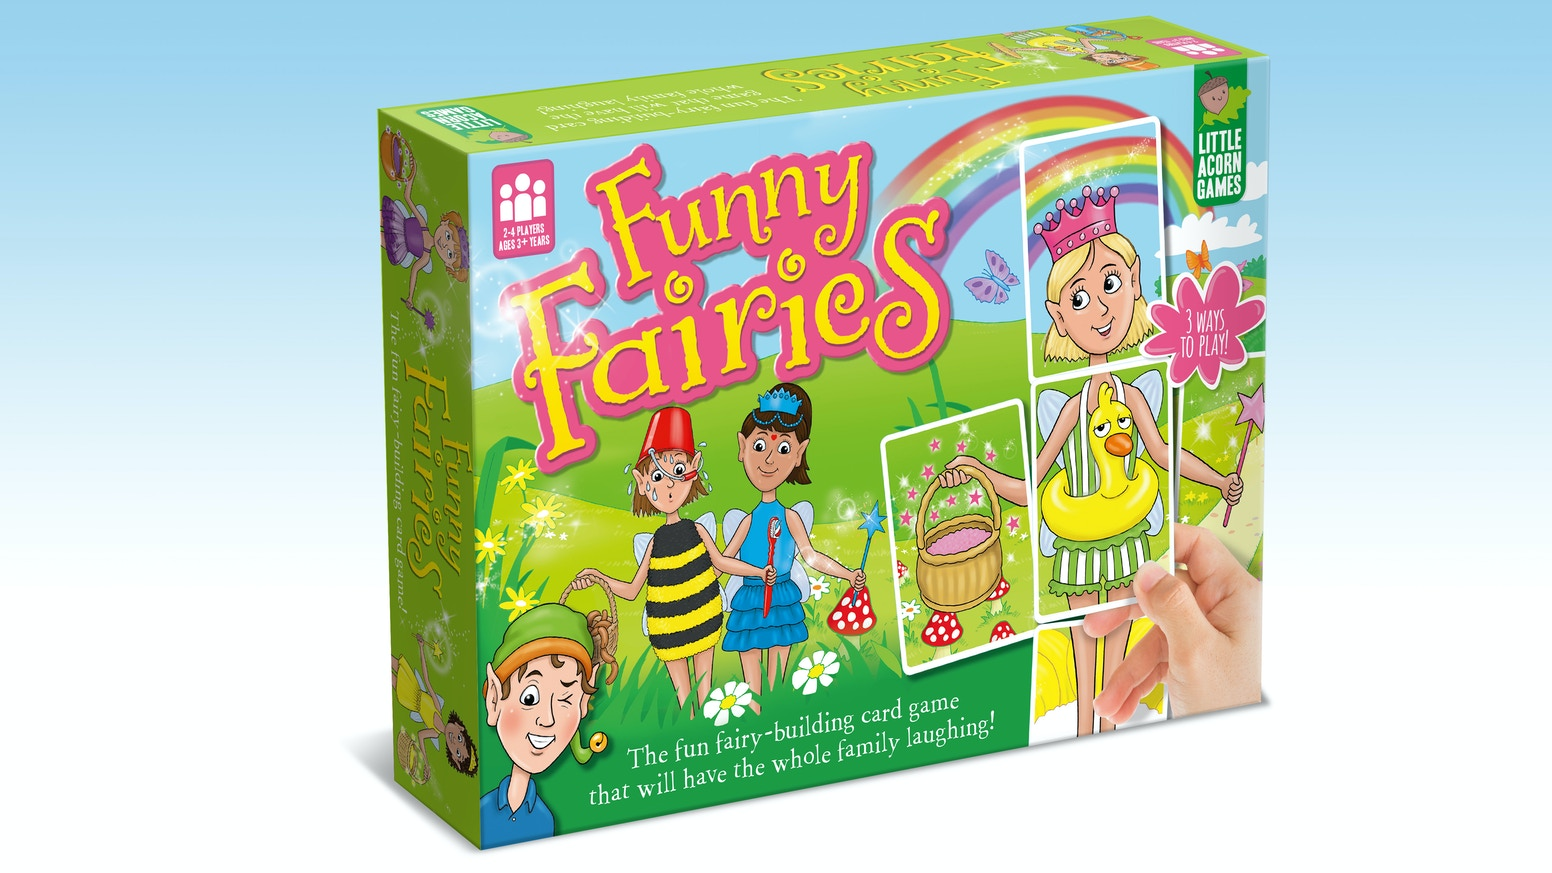 Spell practice at Fairy School is going hilariously wrong and the fairies need your help to get back to normal!